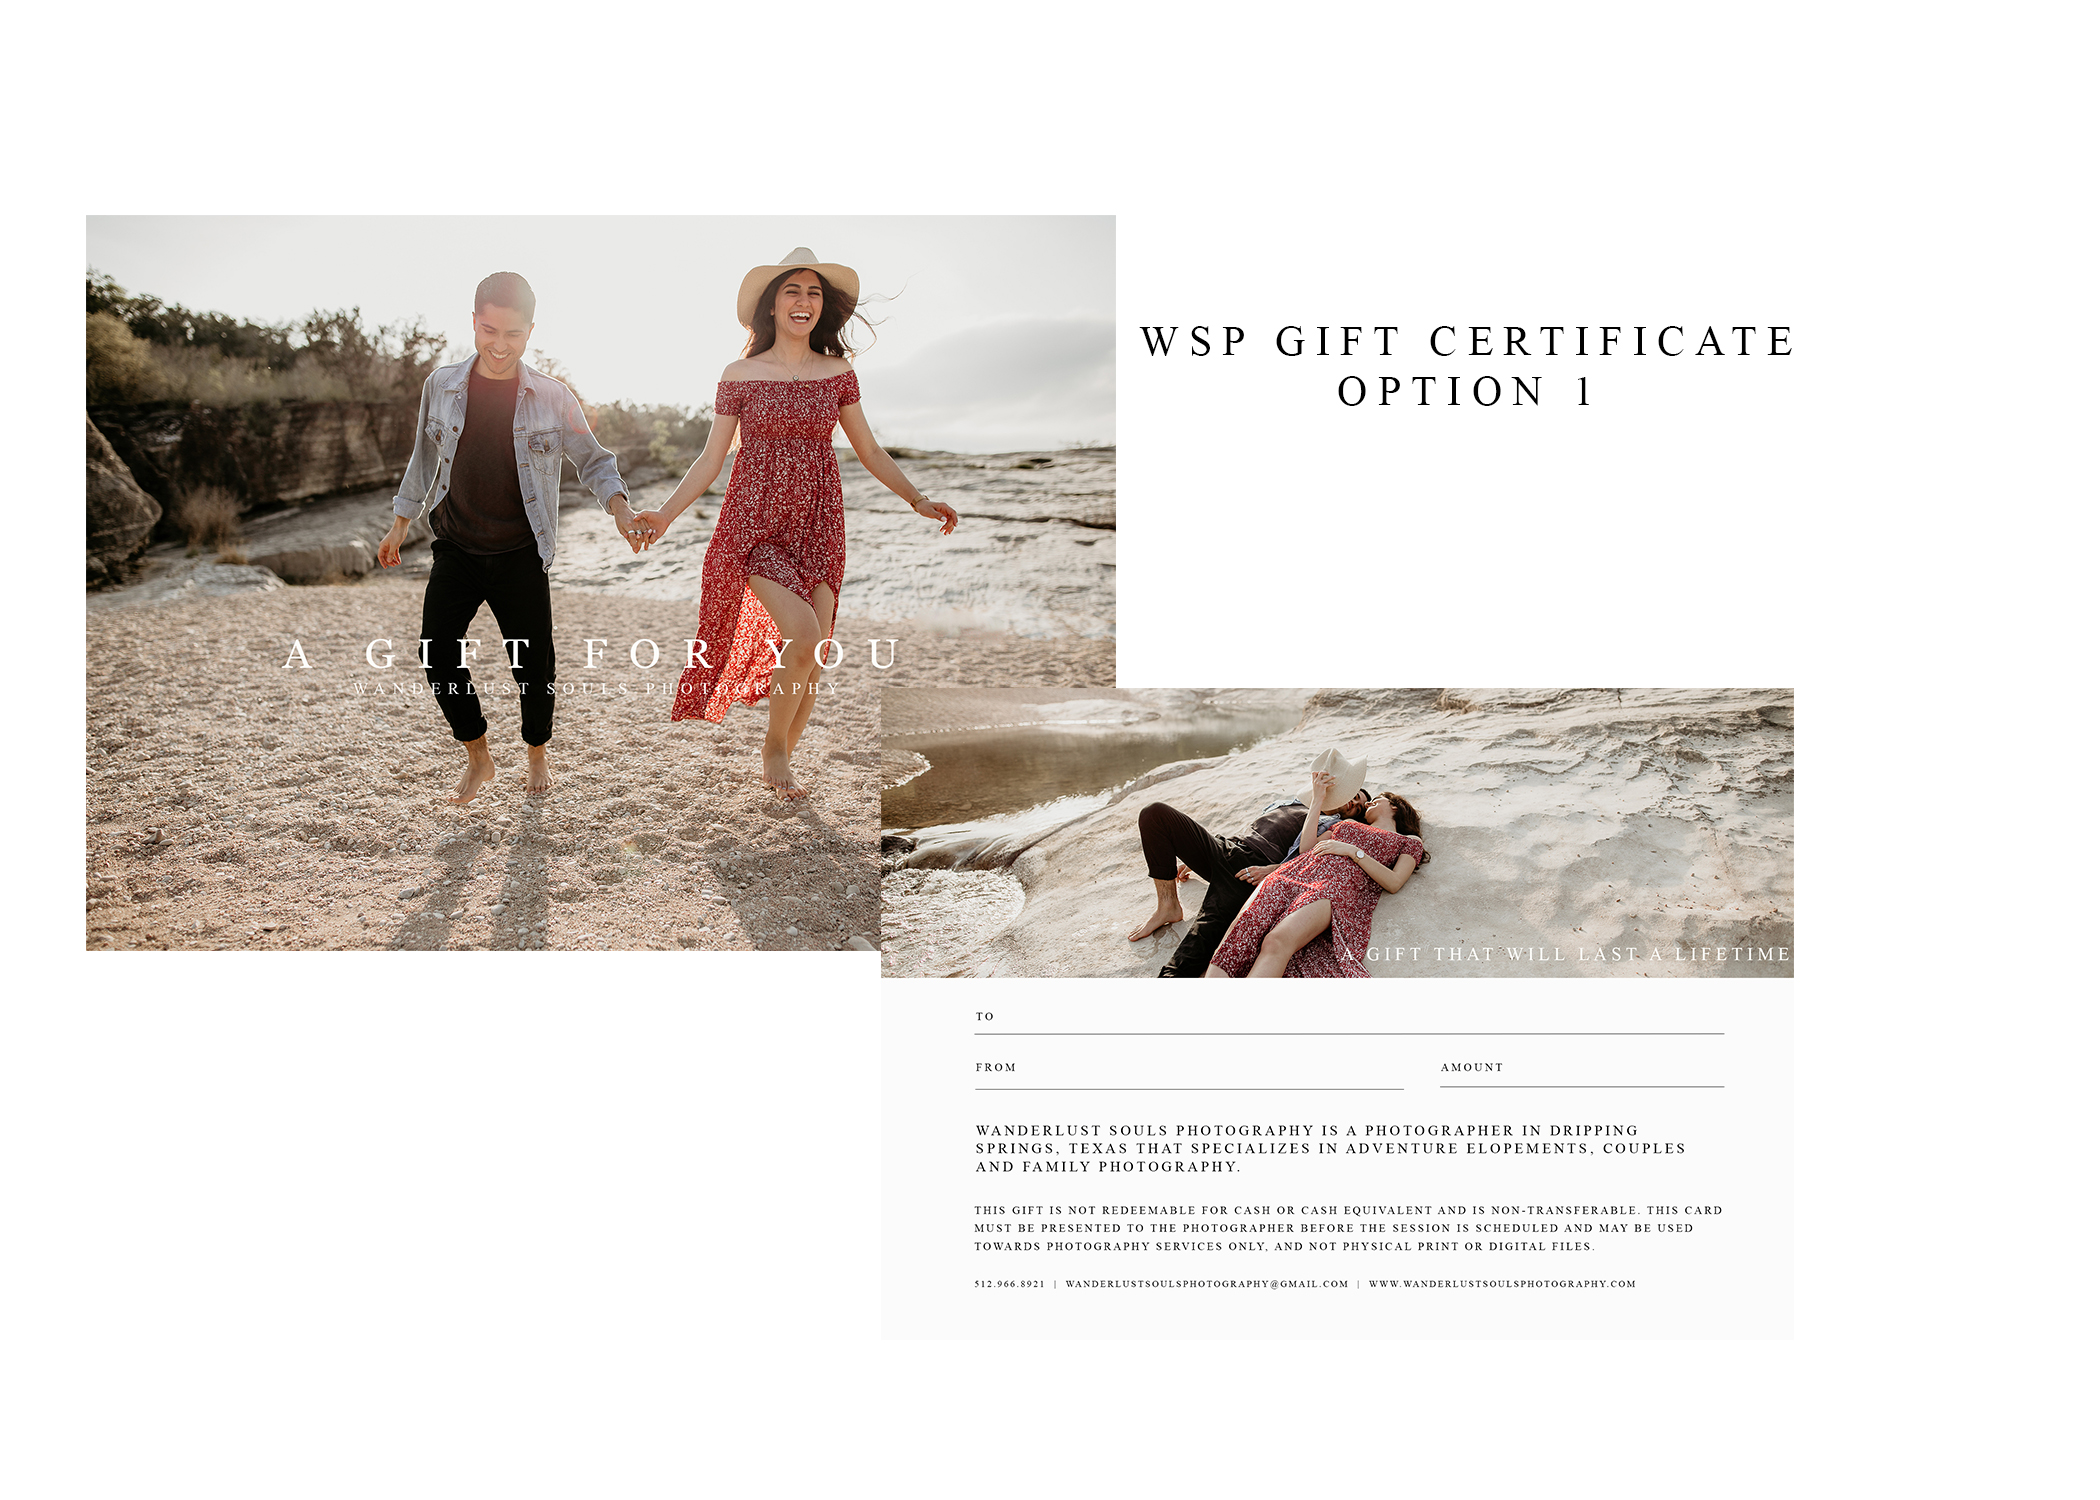 GIFT CERTIFICATE 1 (COUPLE).jpg